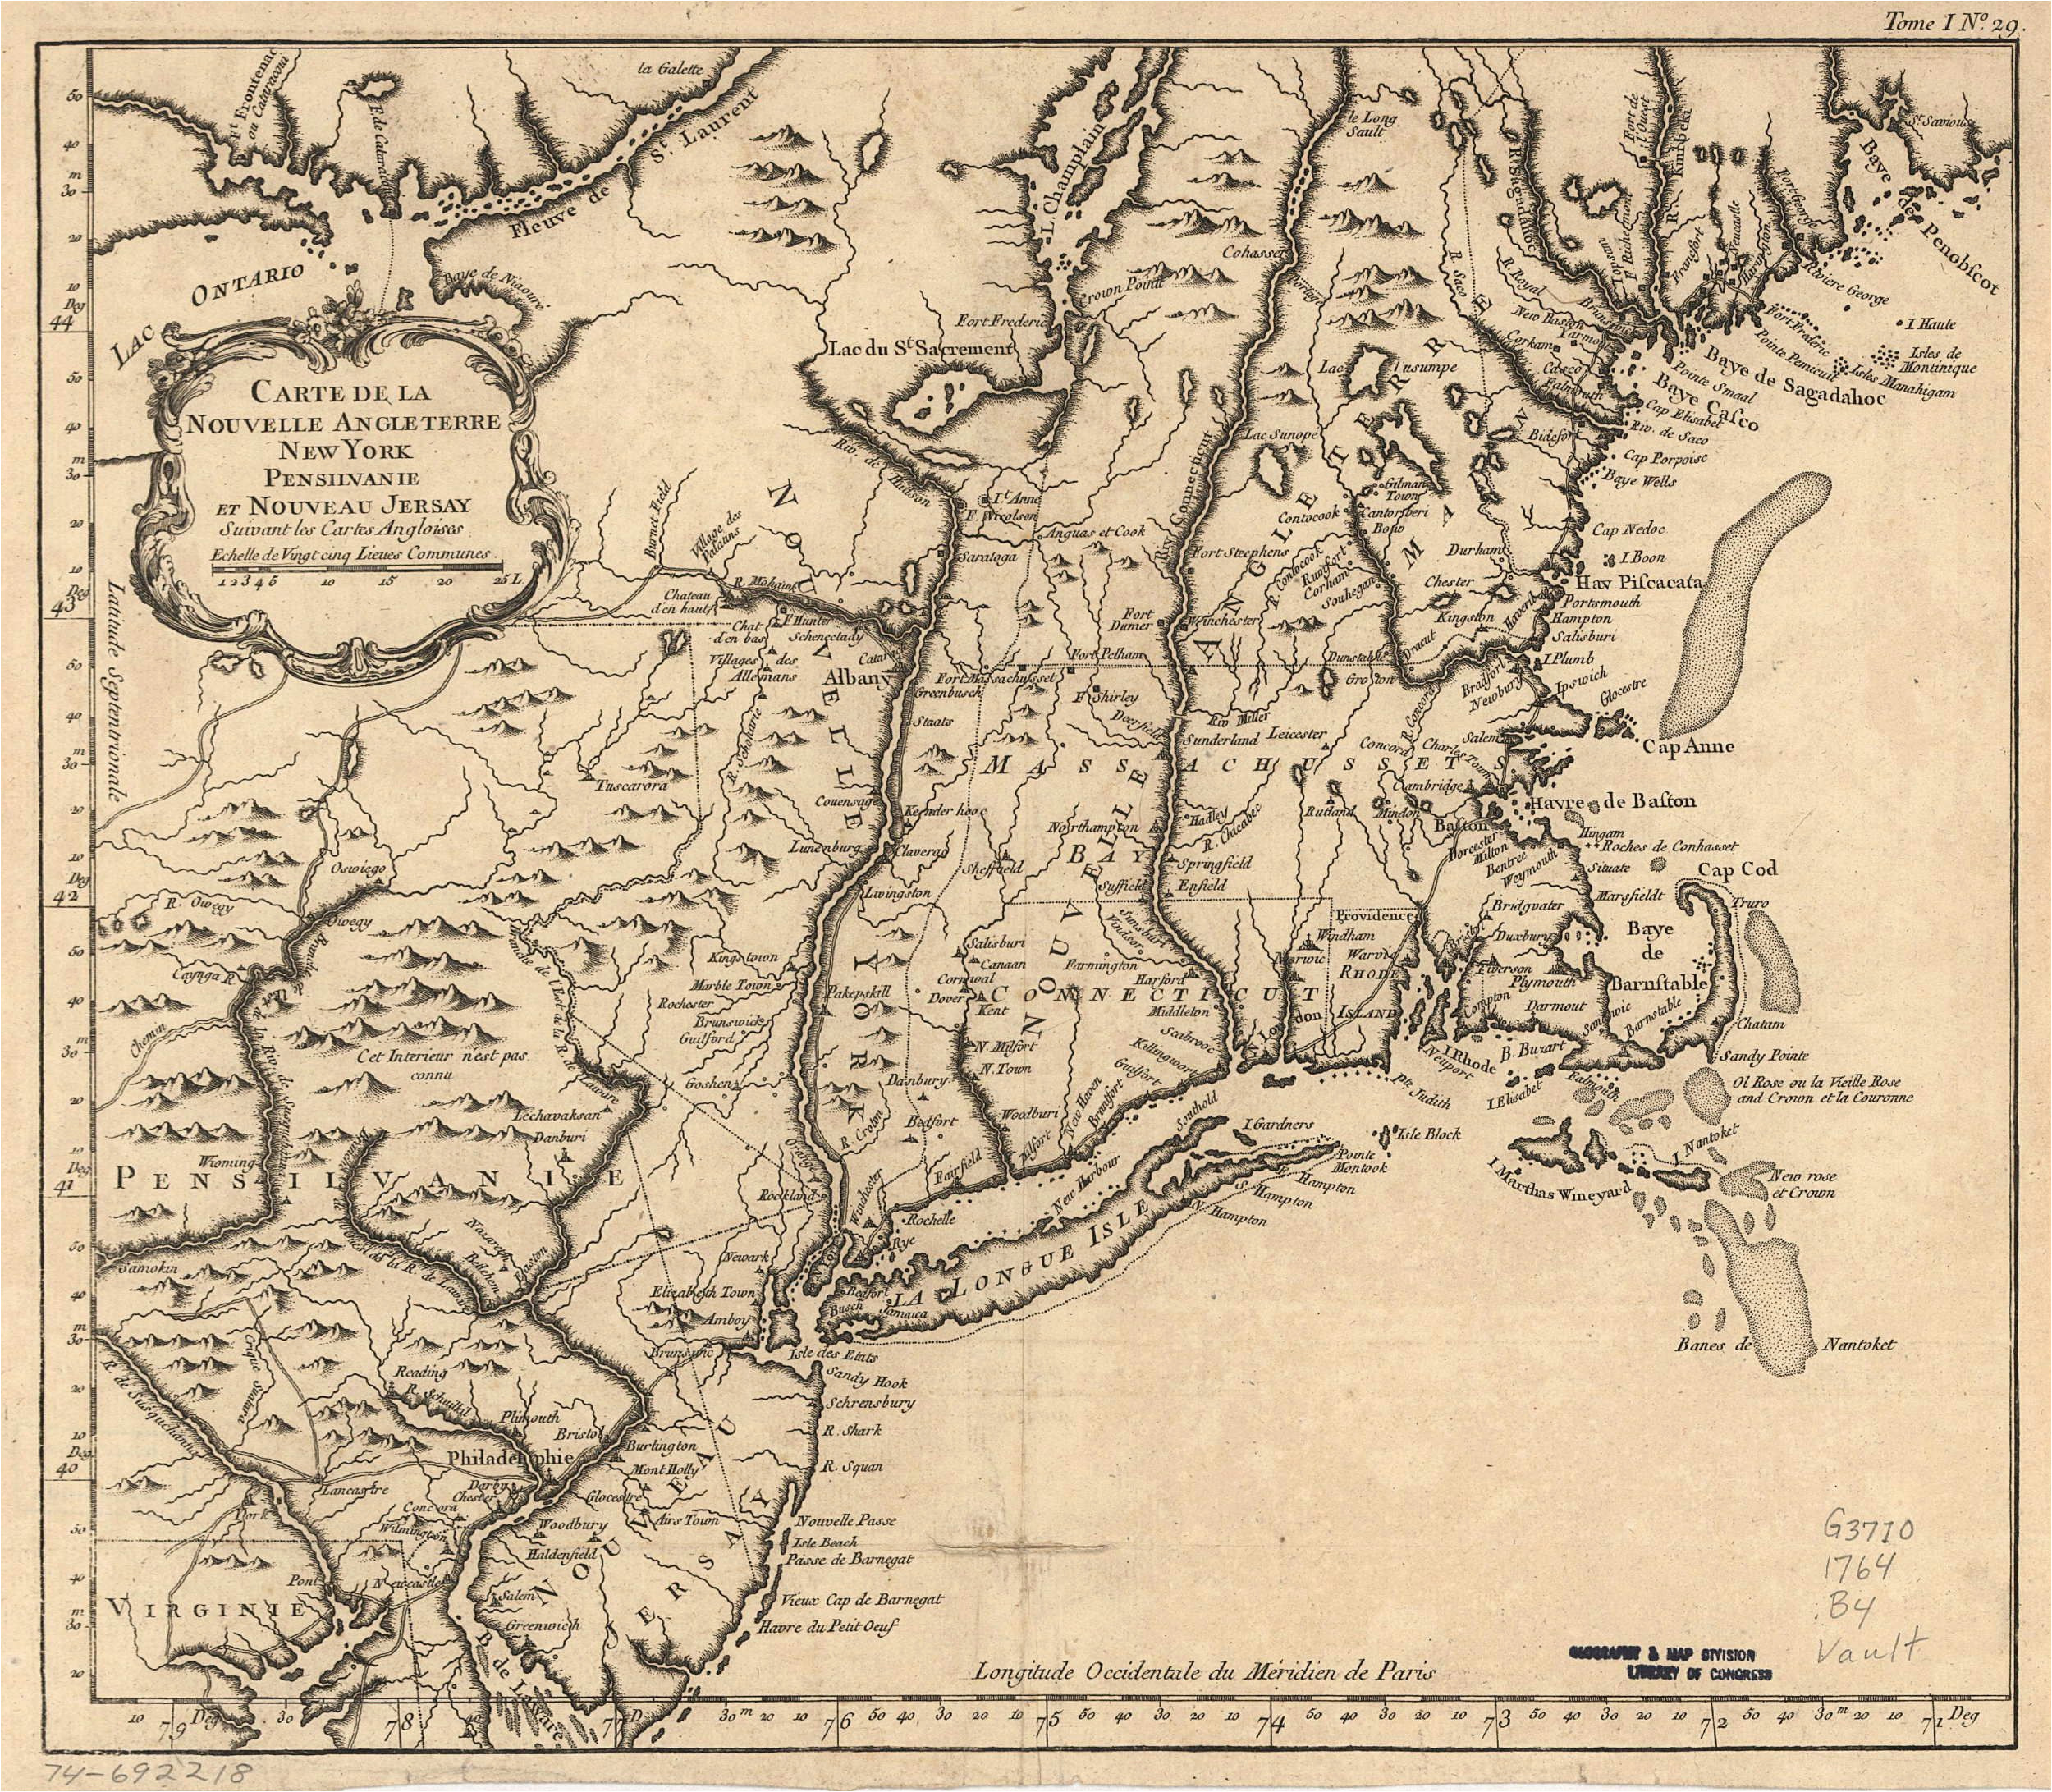 pa 1760s map to bethlehem and lancaster great